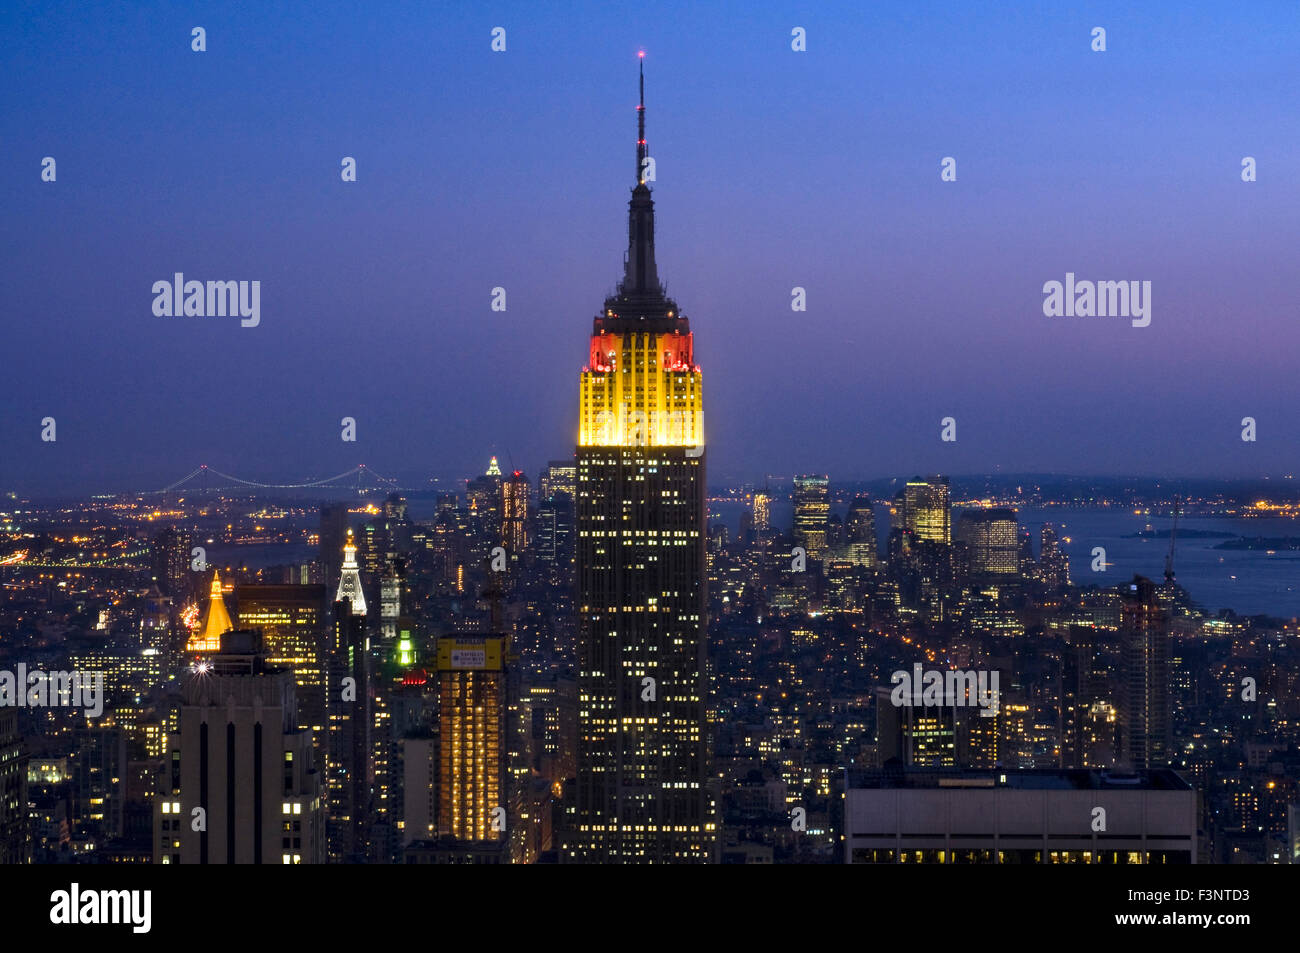 Empire State Building seen from Top of the Rock at Rockefeller Center. 350 Fifth Ave corner of 34th St. The Empire Stock Photo